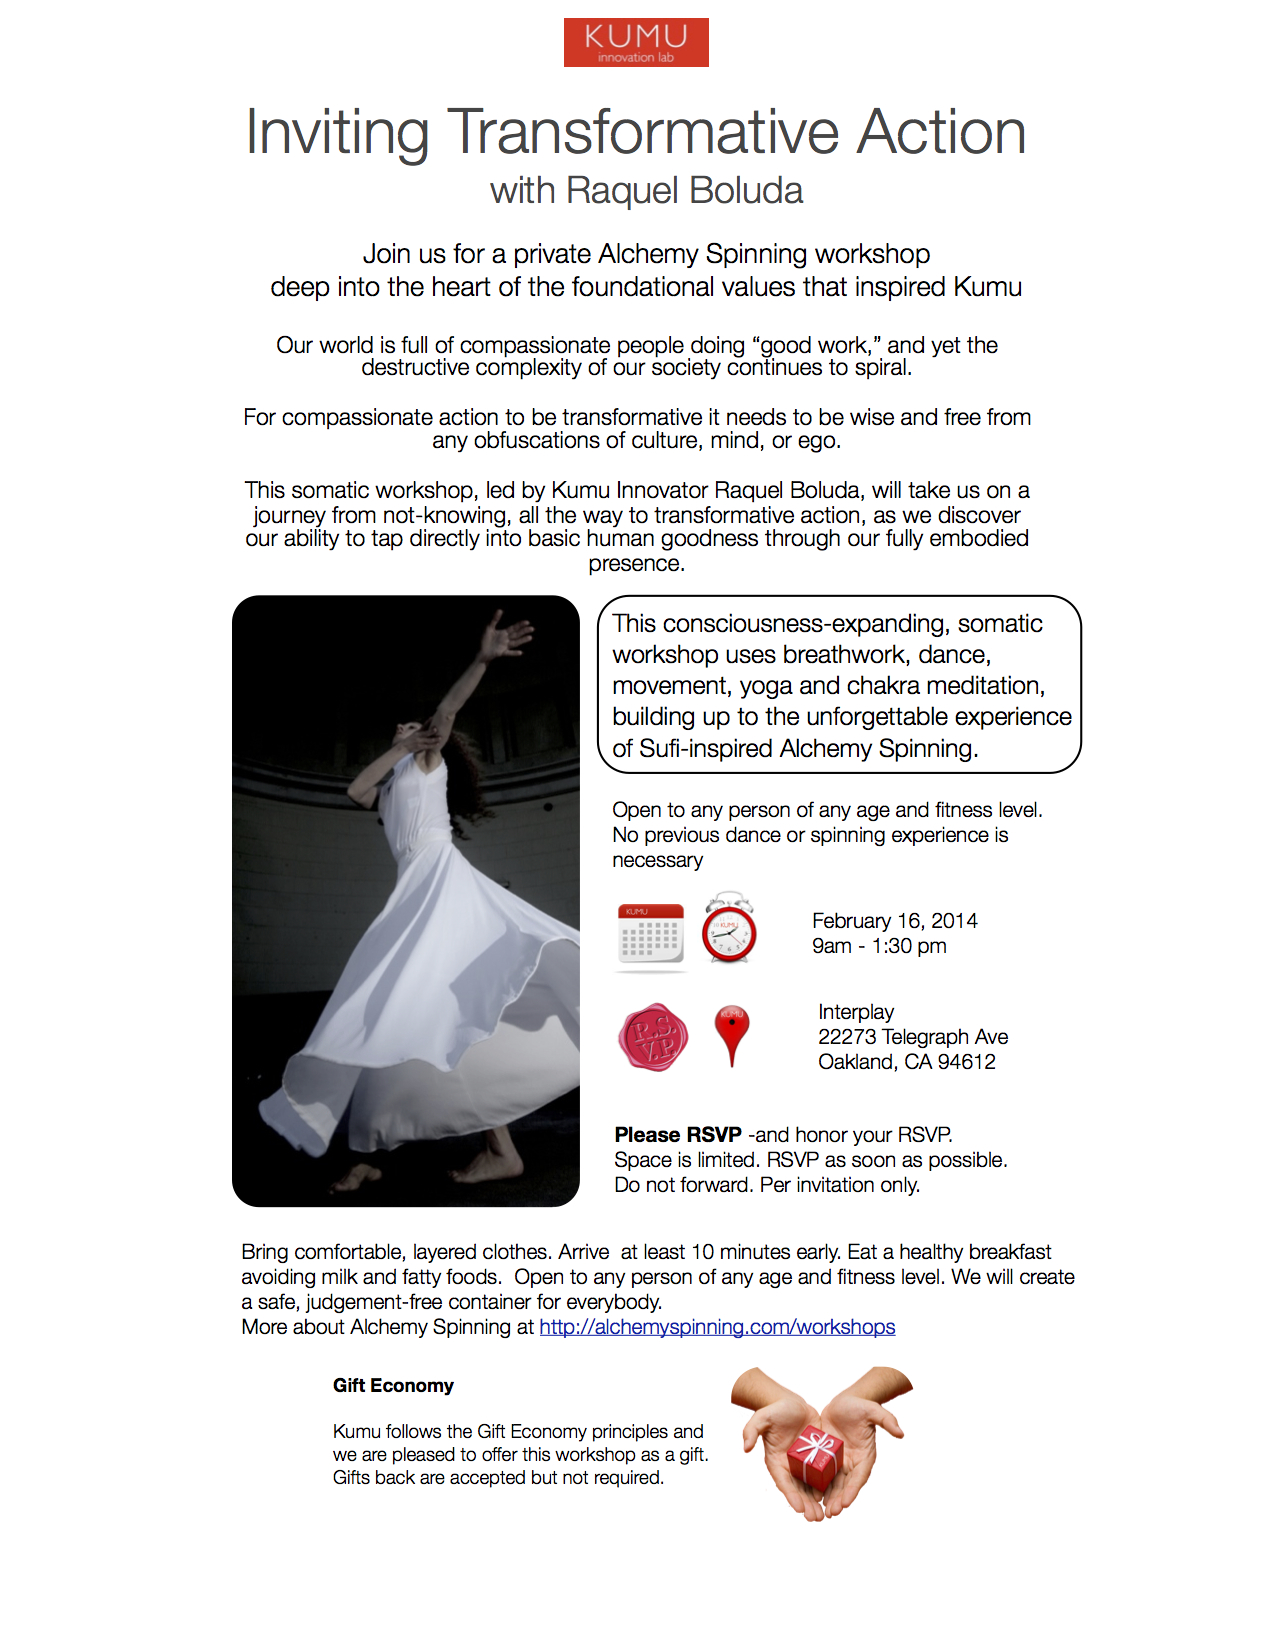 Inviting Transformative Action-Alchemy Spinning Workshop